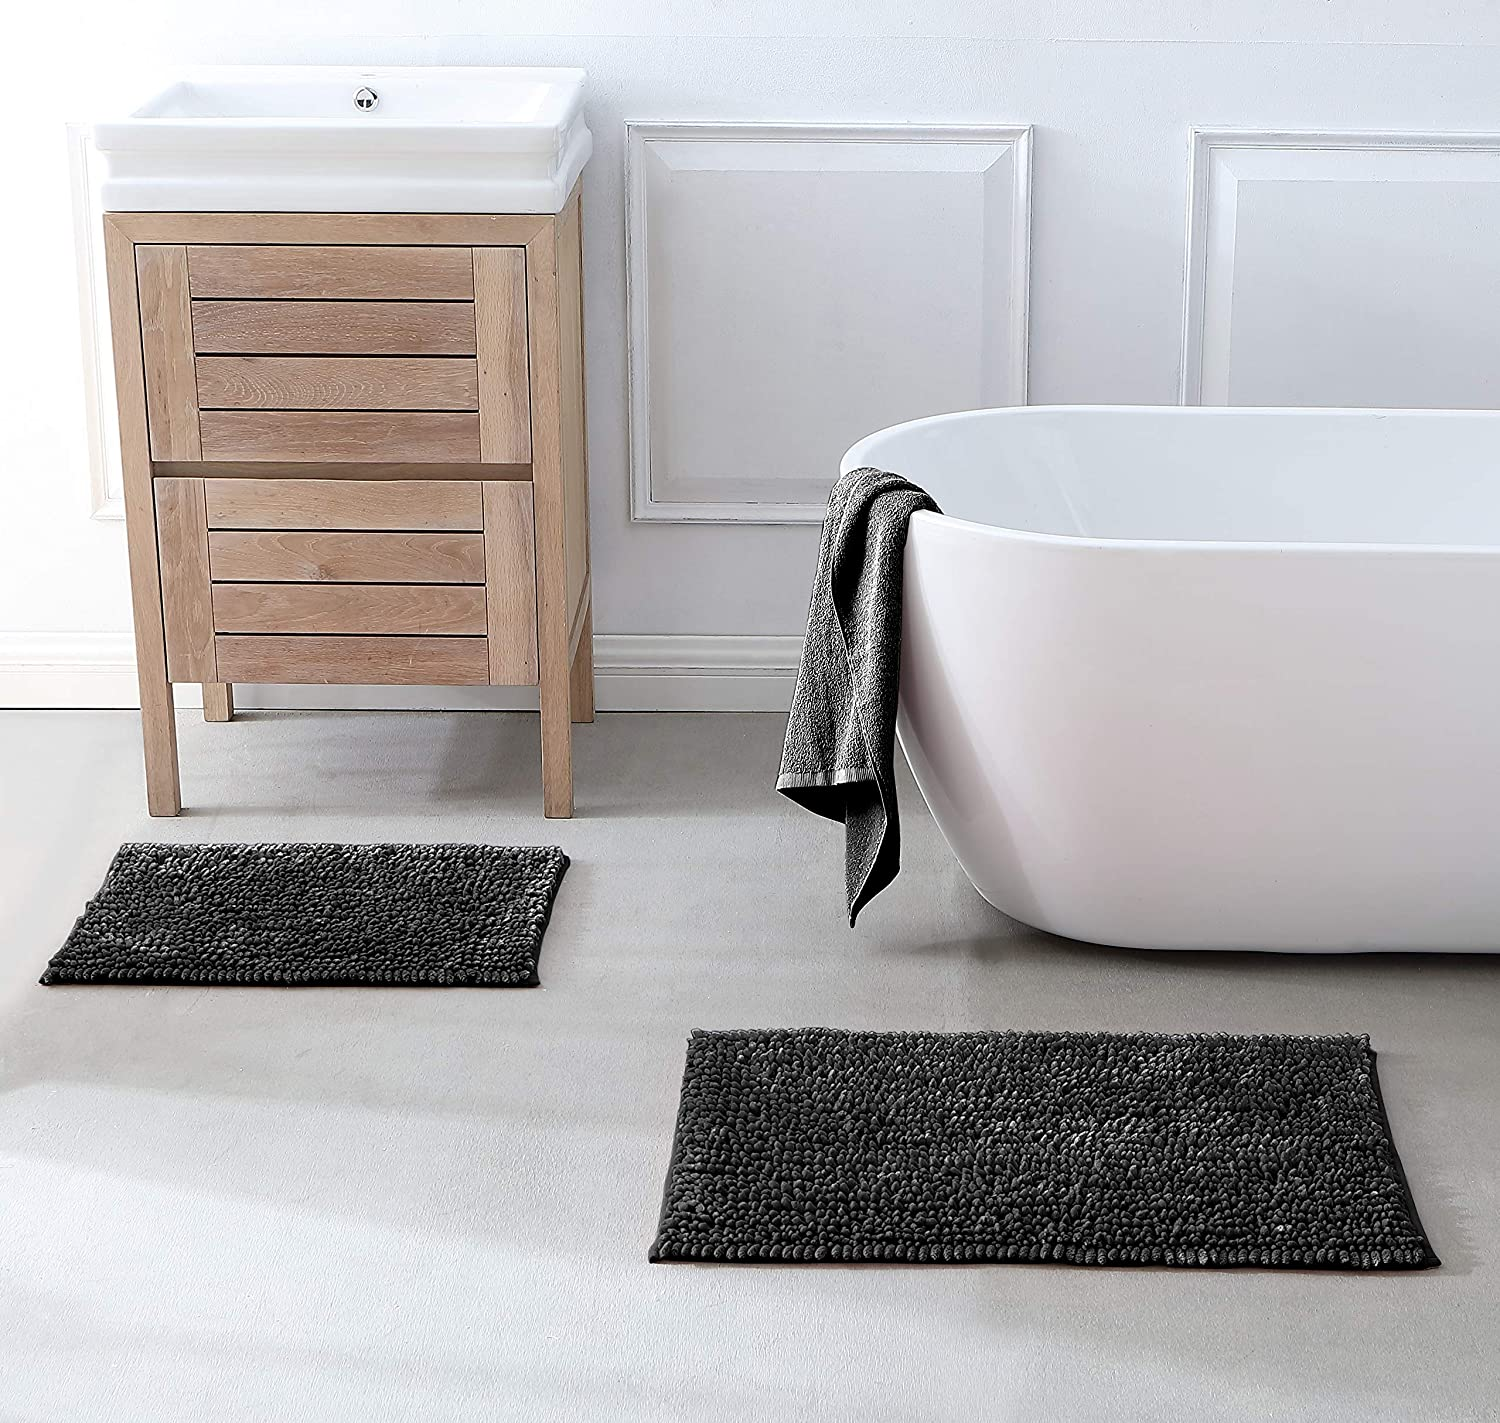 ELBASMT Silky Chenille Bath Rug,Non Slip Bath Mats for Bathroom Extra Soft and Absorbent for Extra Absorbent,Soft Shaggy Bath Mat Comfortable,Machine Washable Black 17 x 24